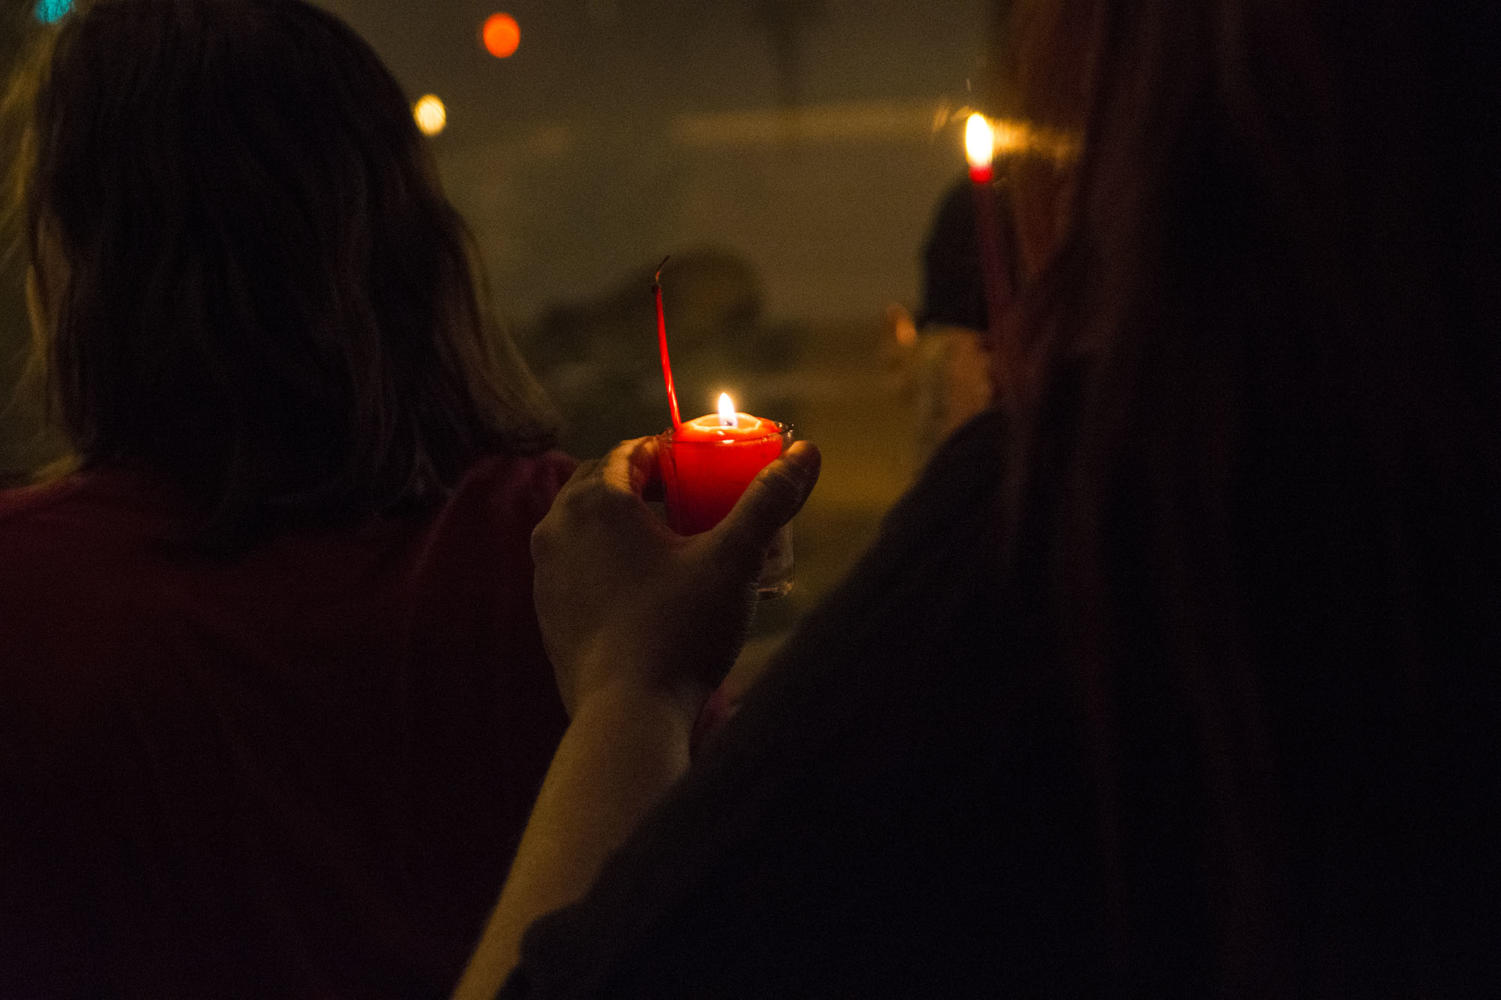 A participant in the Imbolc ritual holds a candle Saturday, Feb. 3, 2018, at The Gaia House in Carbondale. (Athena Chrysanthou | @Chrysant1Athena)